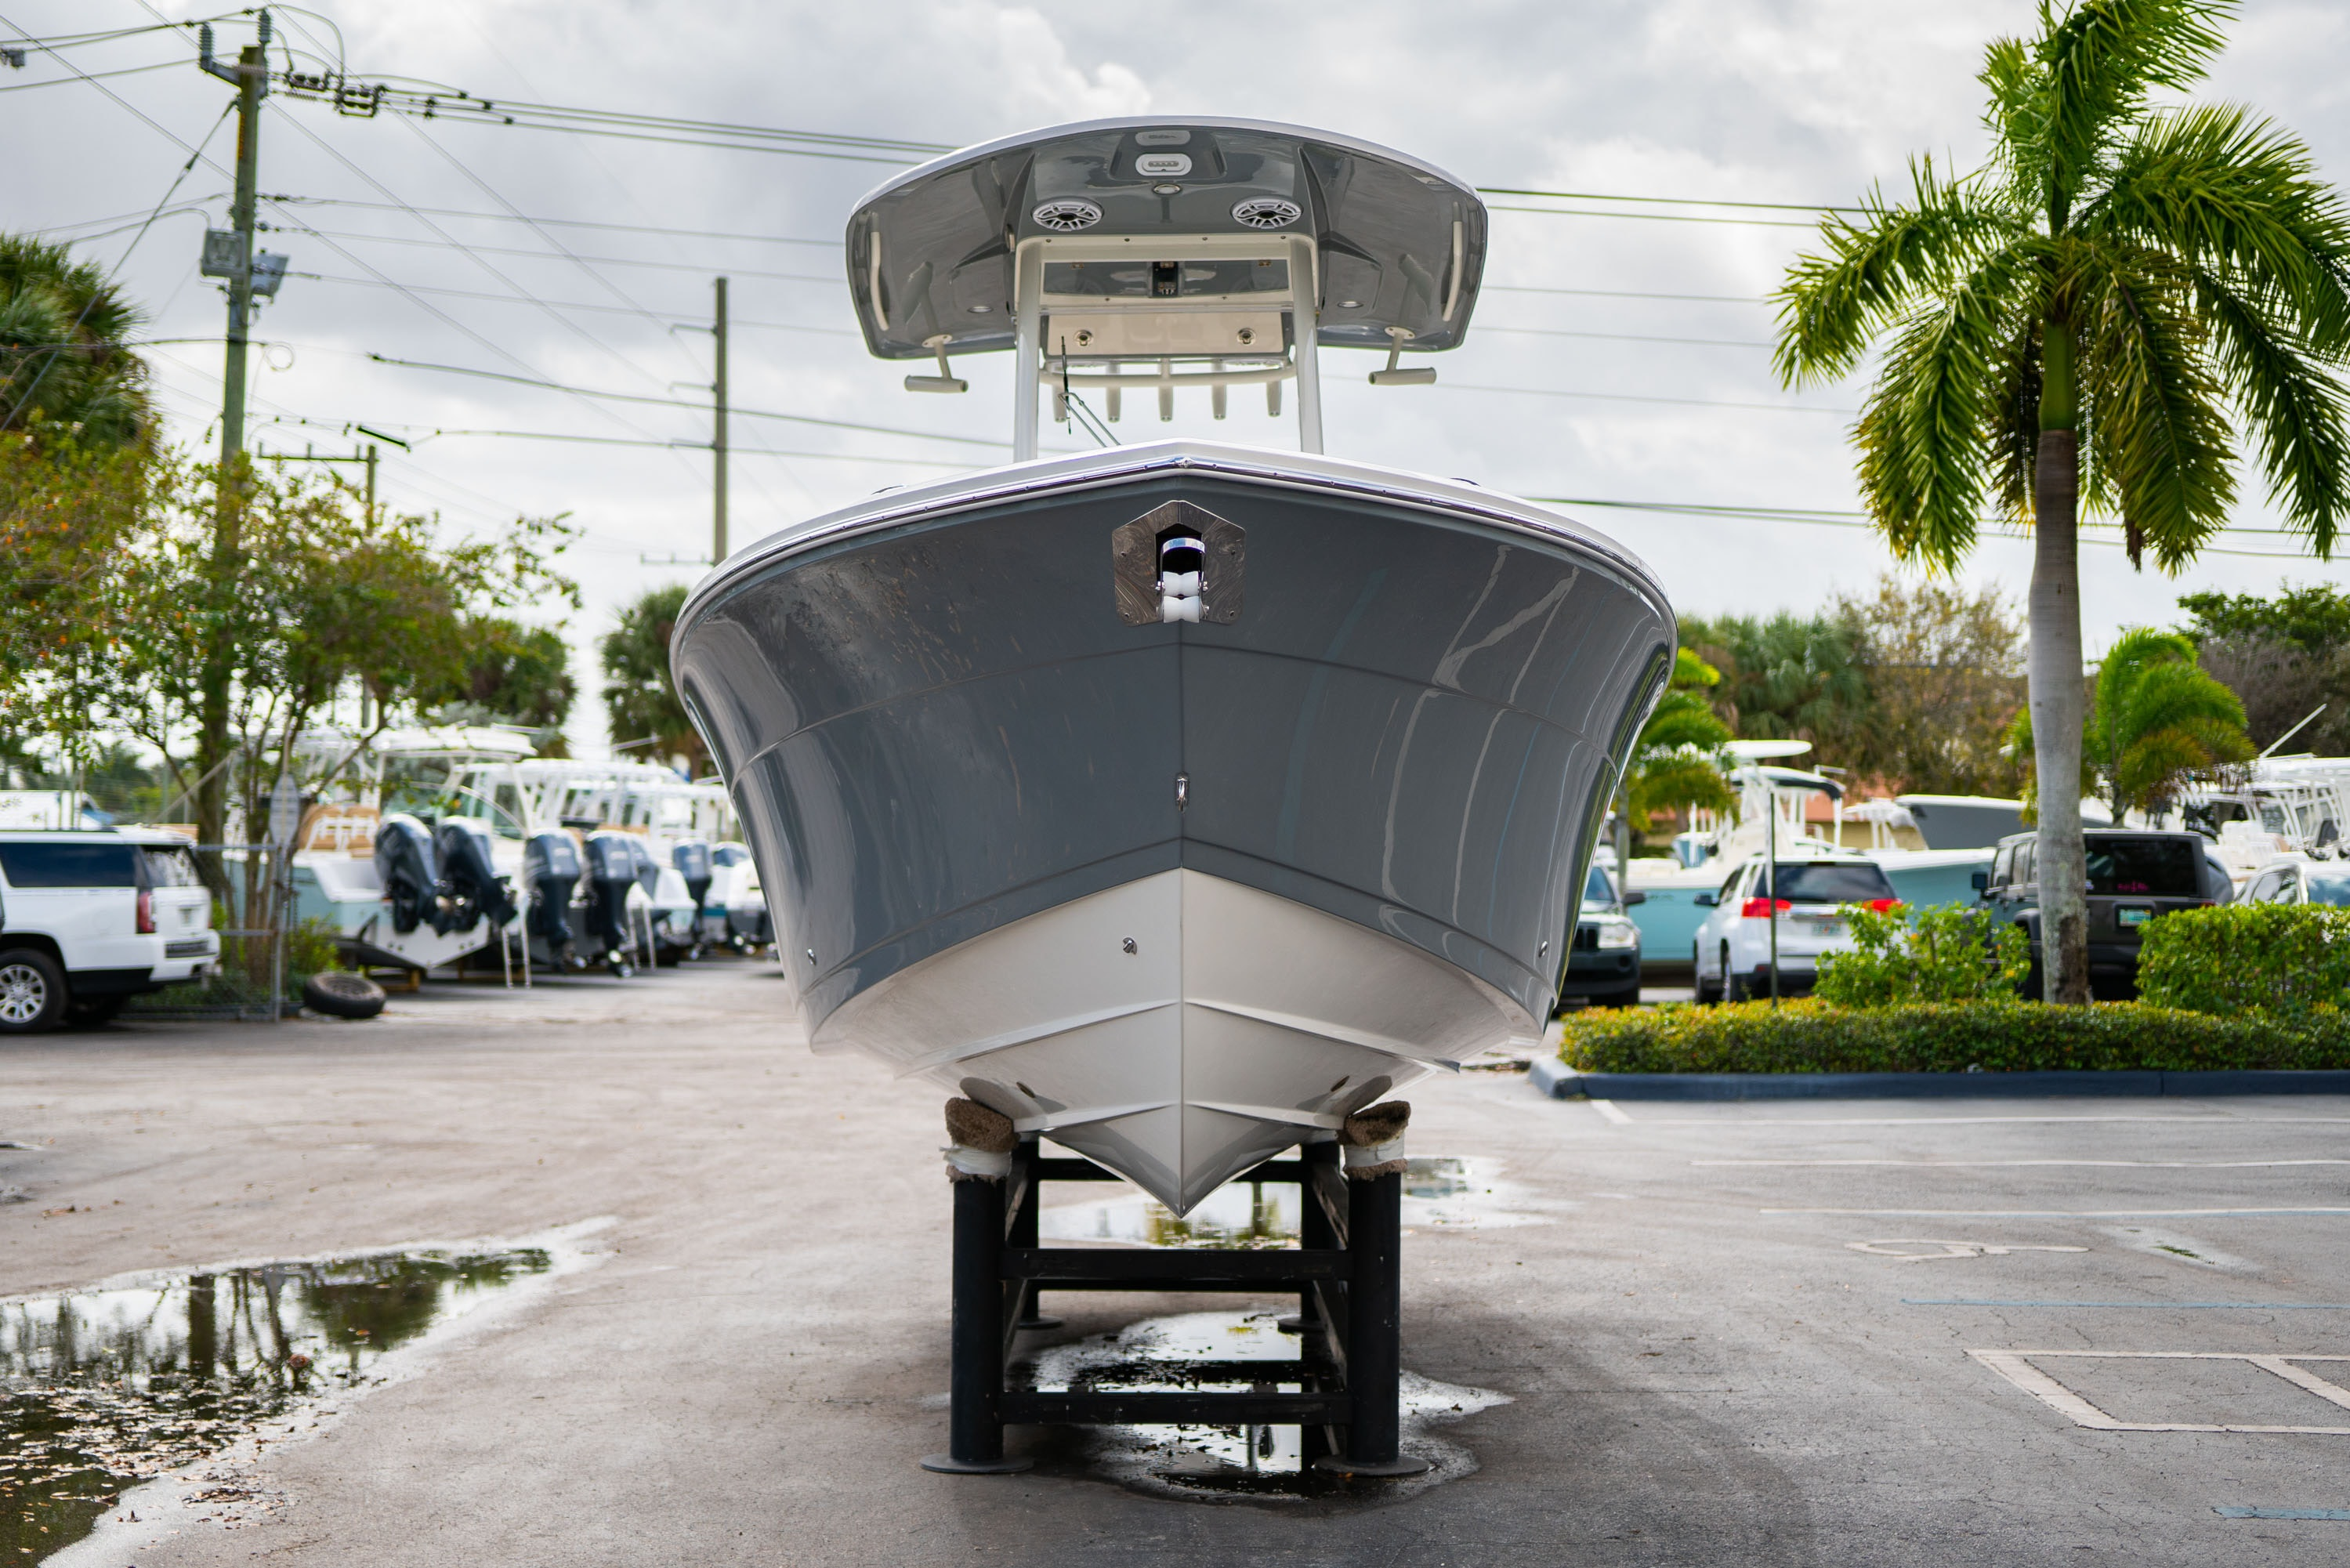 Thumbnail 2 for New 2020 Cobia 240 CC Center Console boat for sale in West Palm Beach, FL